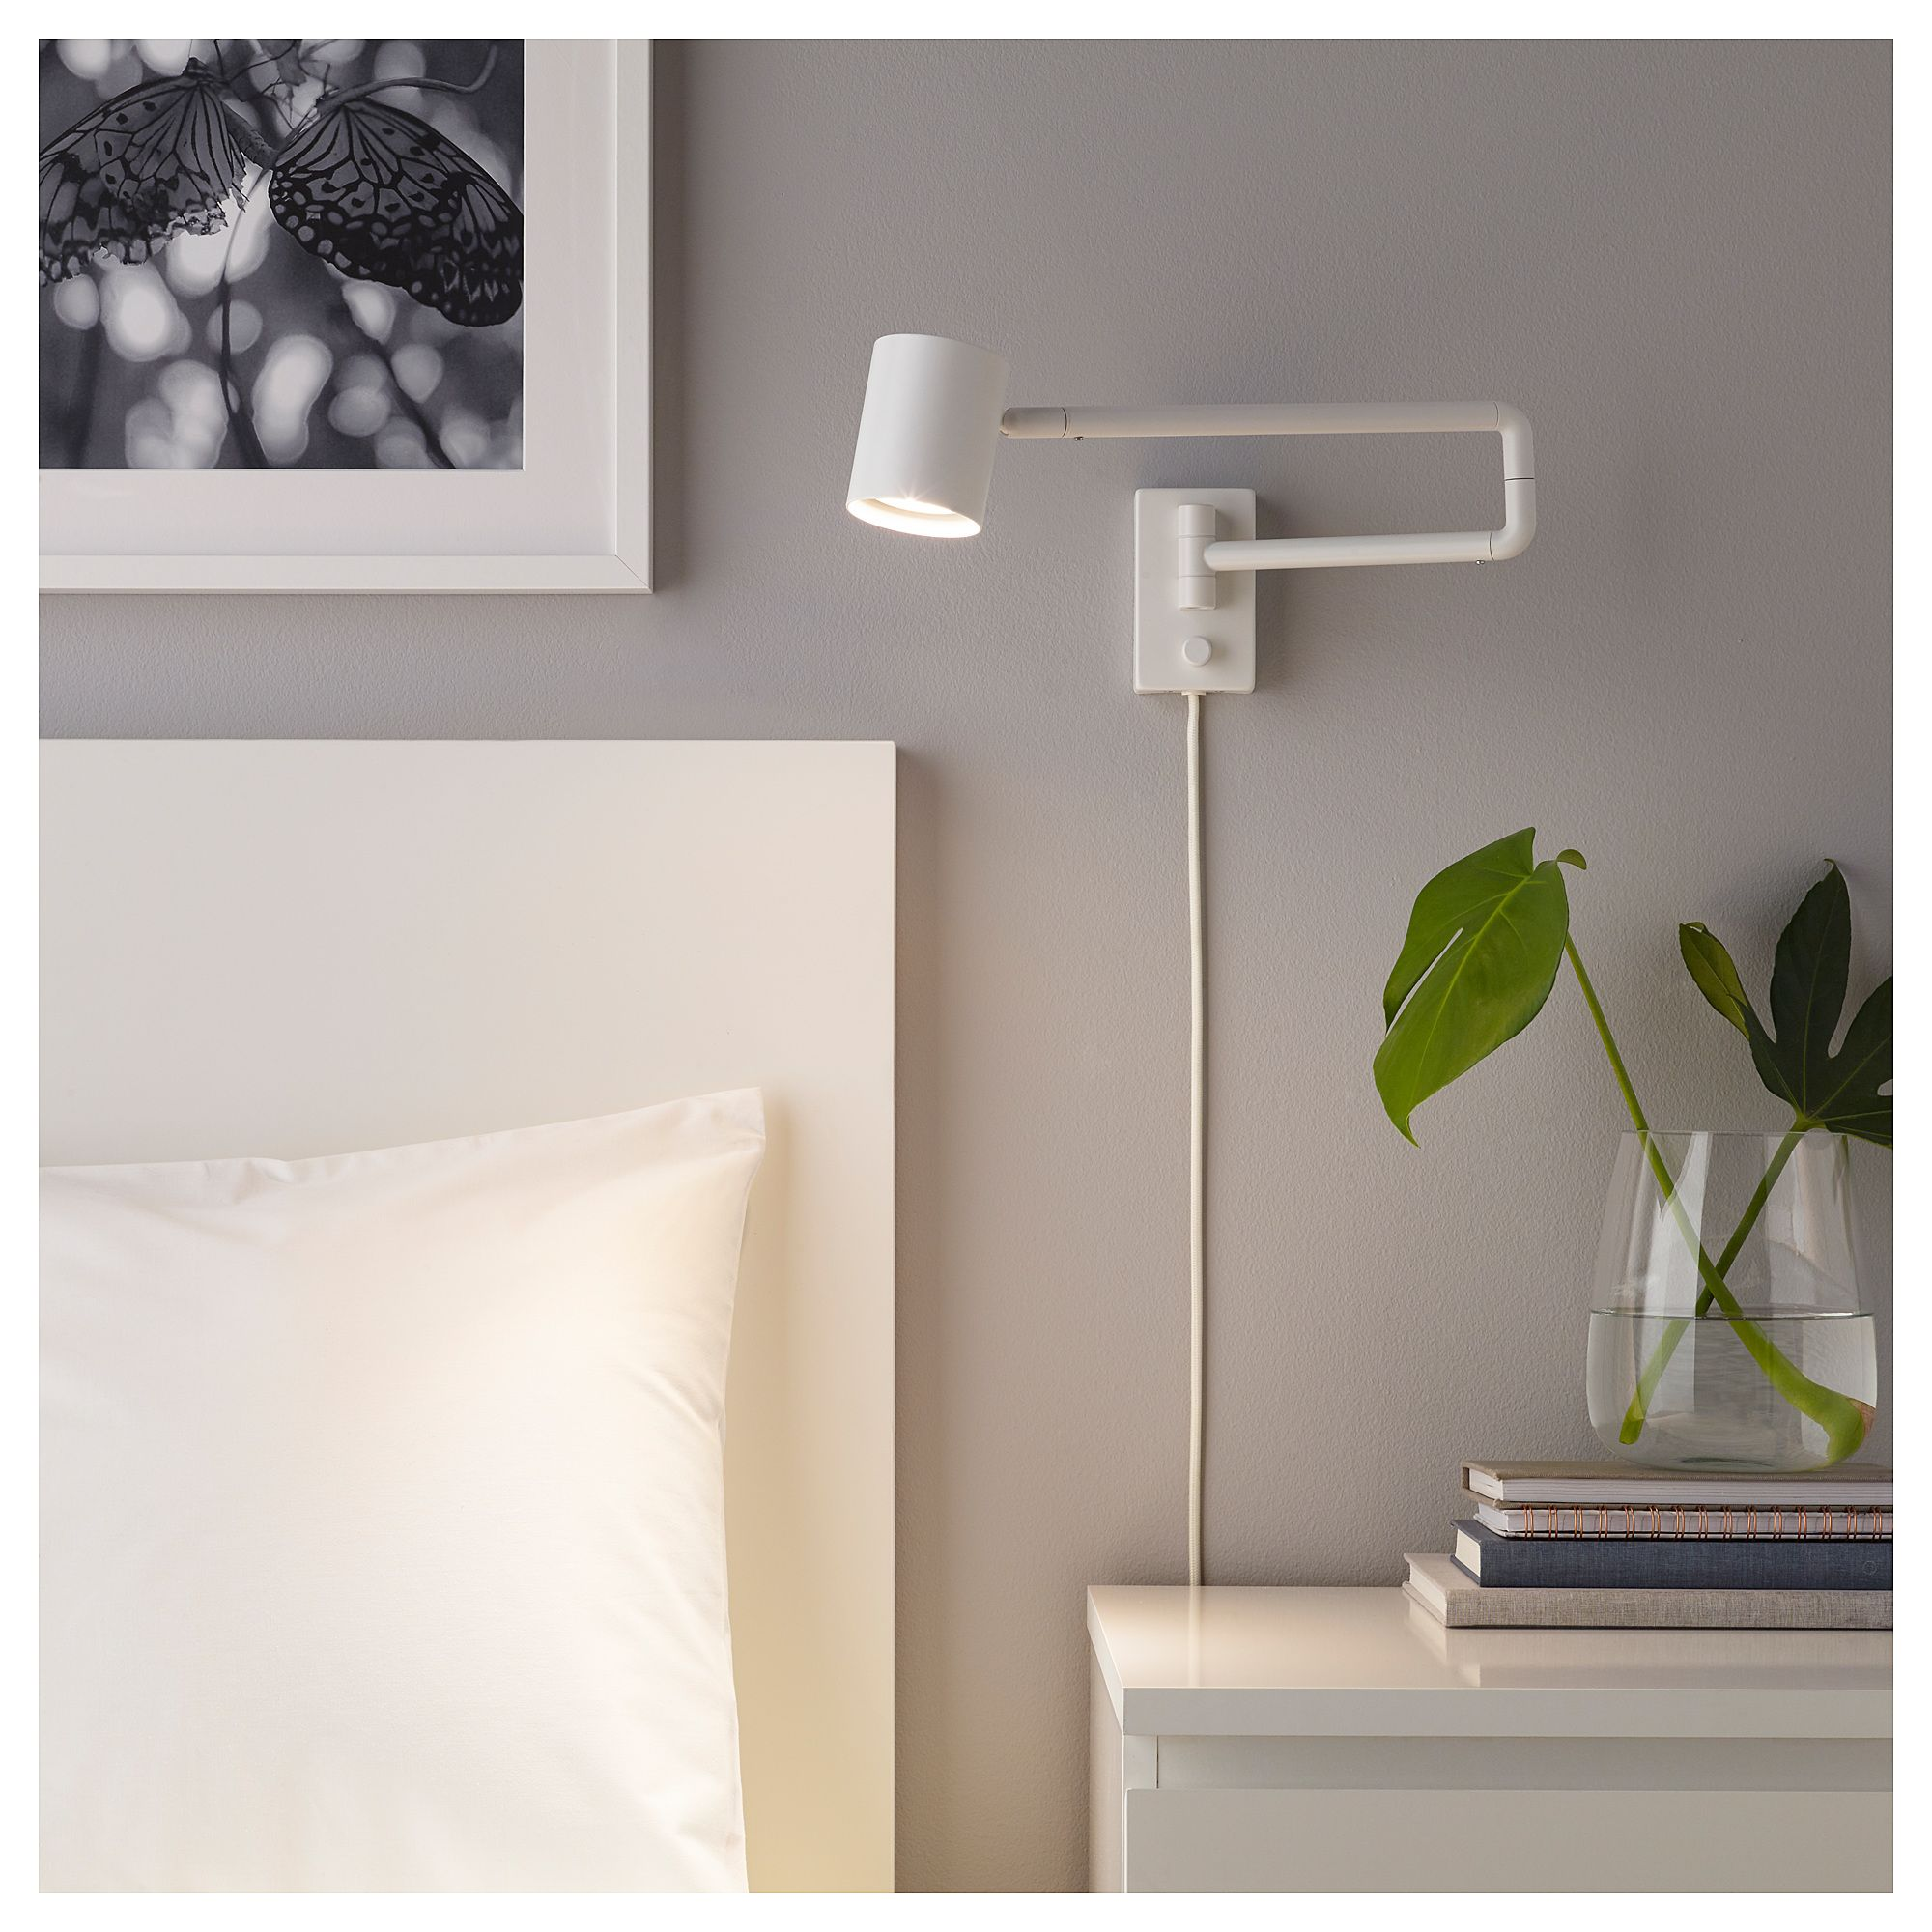 Nymåne Wall Lamp With Swing Arm White Bedroom Déco